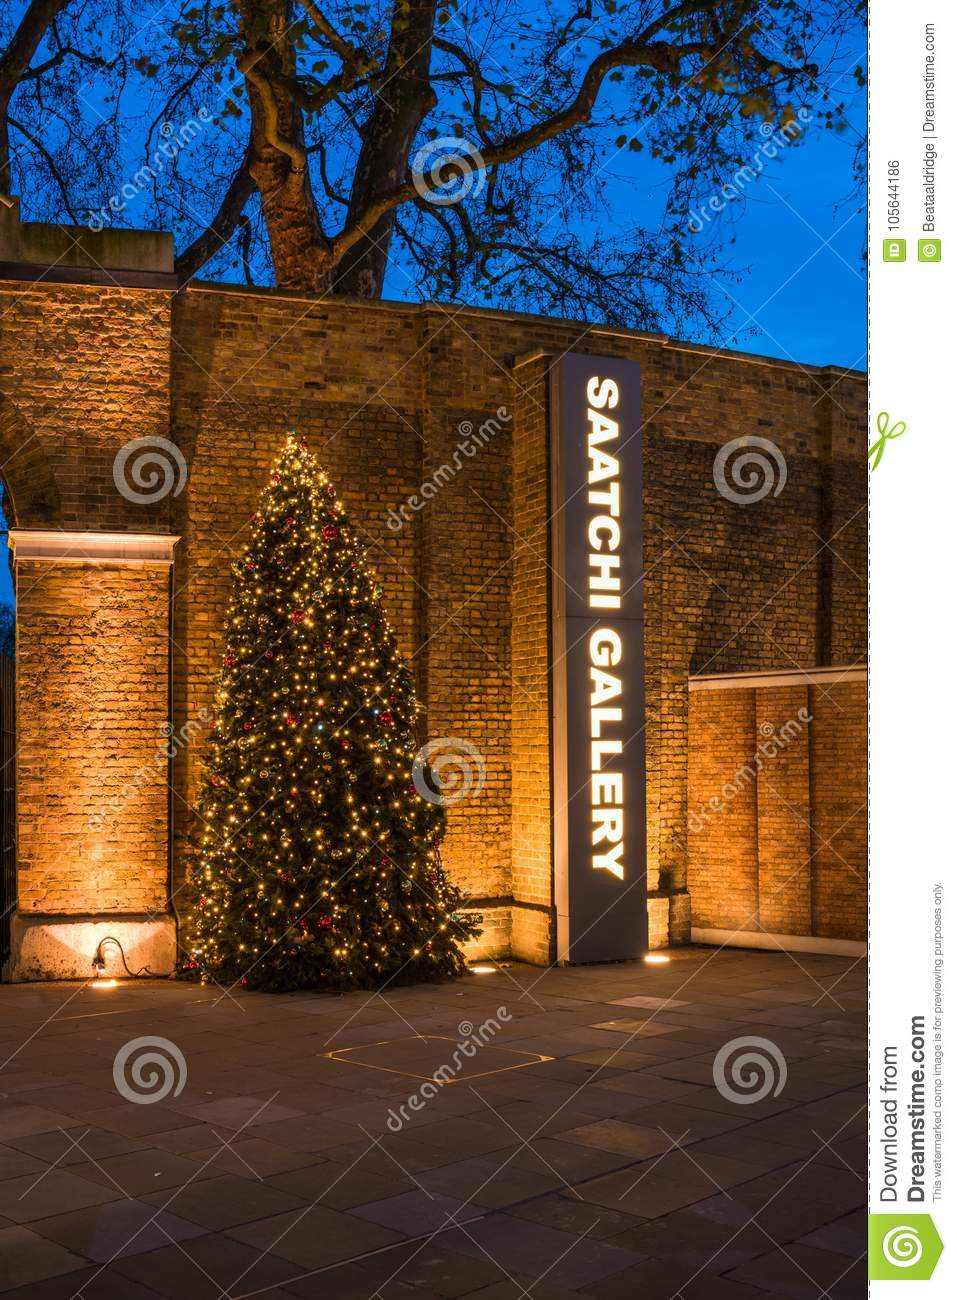 Christmas Decorations At Saatchi Gallery In Chelsea London Uk